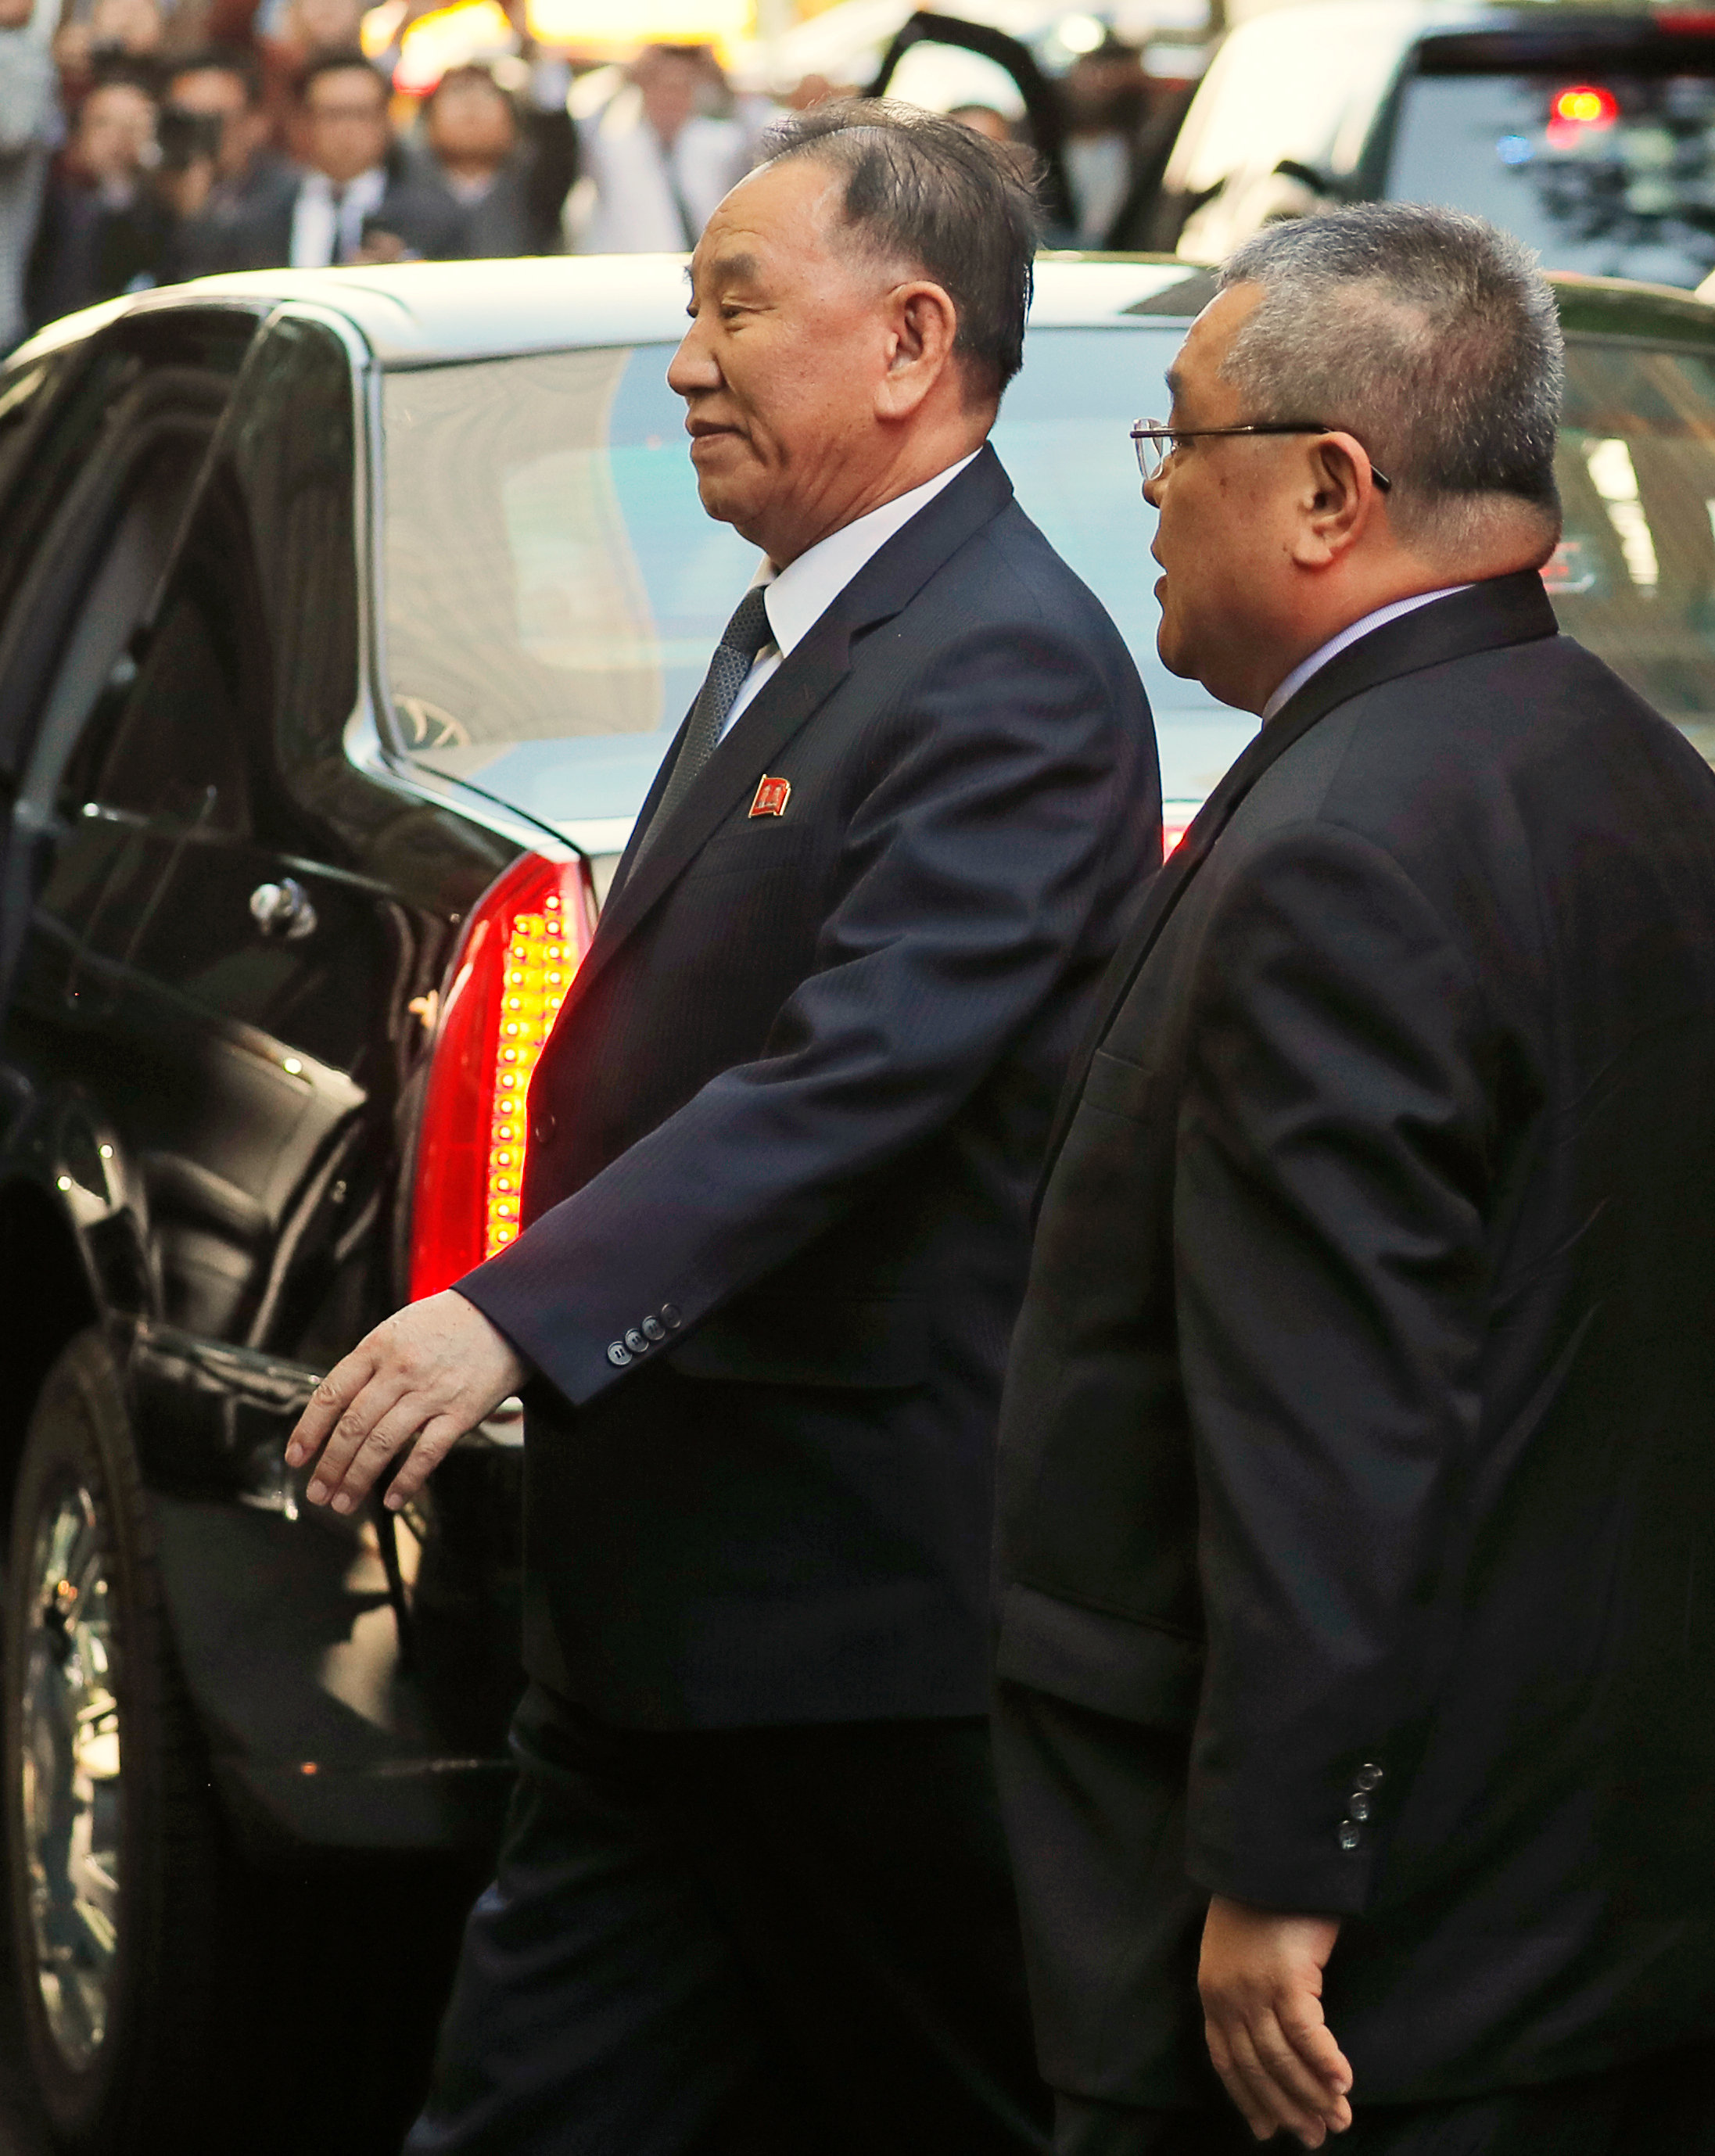 North Korean envoy Kim Yong Chol arrives at a hotel in New York, U.S., May 30, 2018. REUTERS/Lucas Jackson